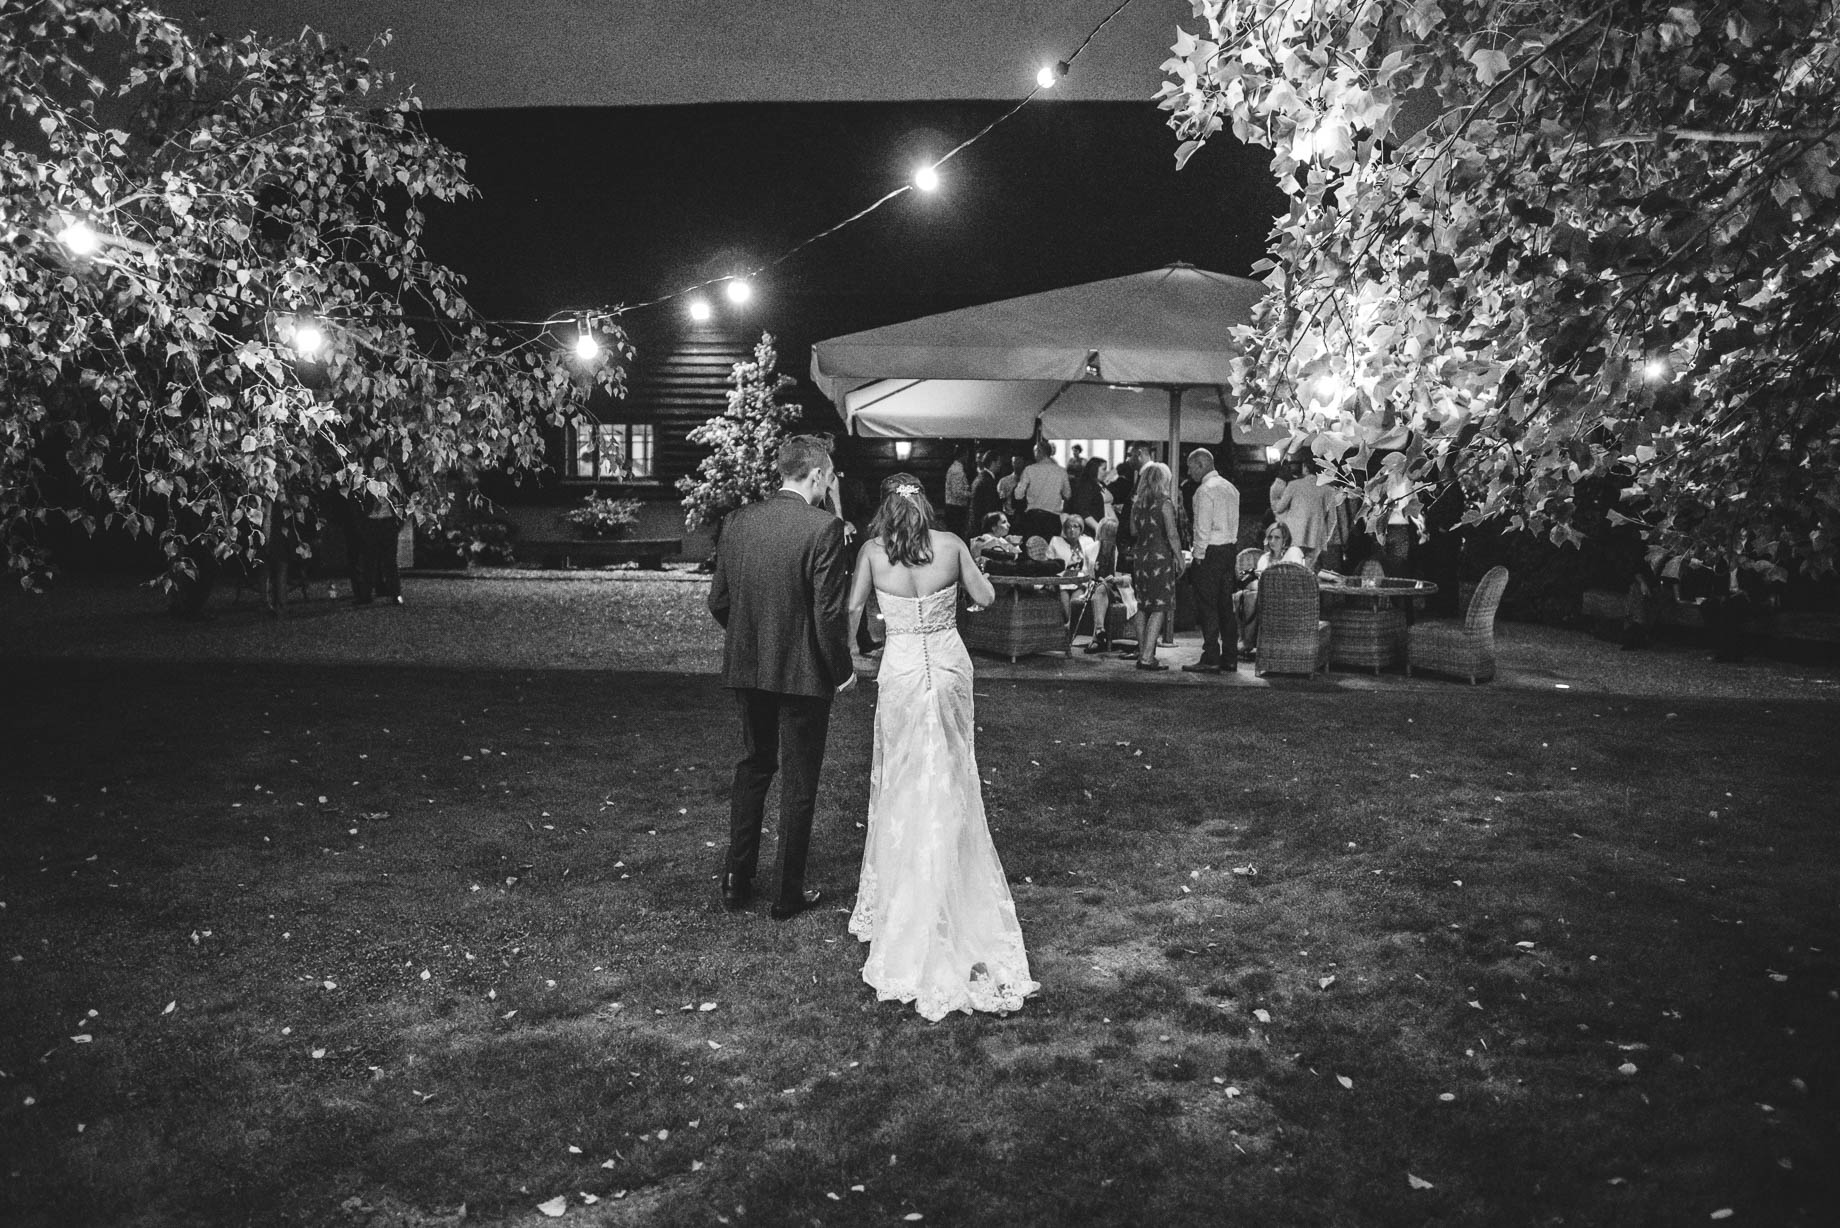 Gate Street Barn wedding photography - Guy Collier - Claire and Andy (172 of 192)